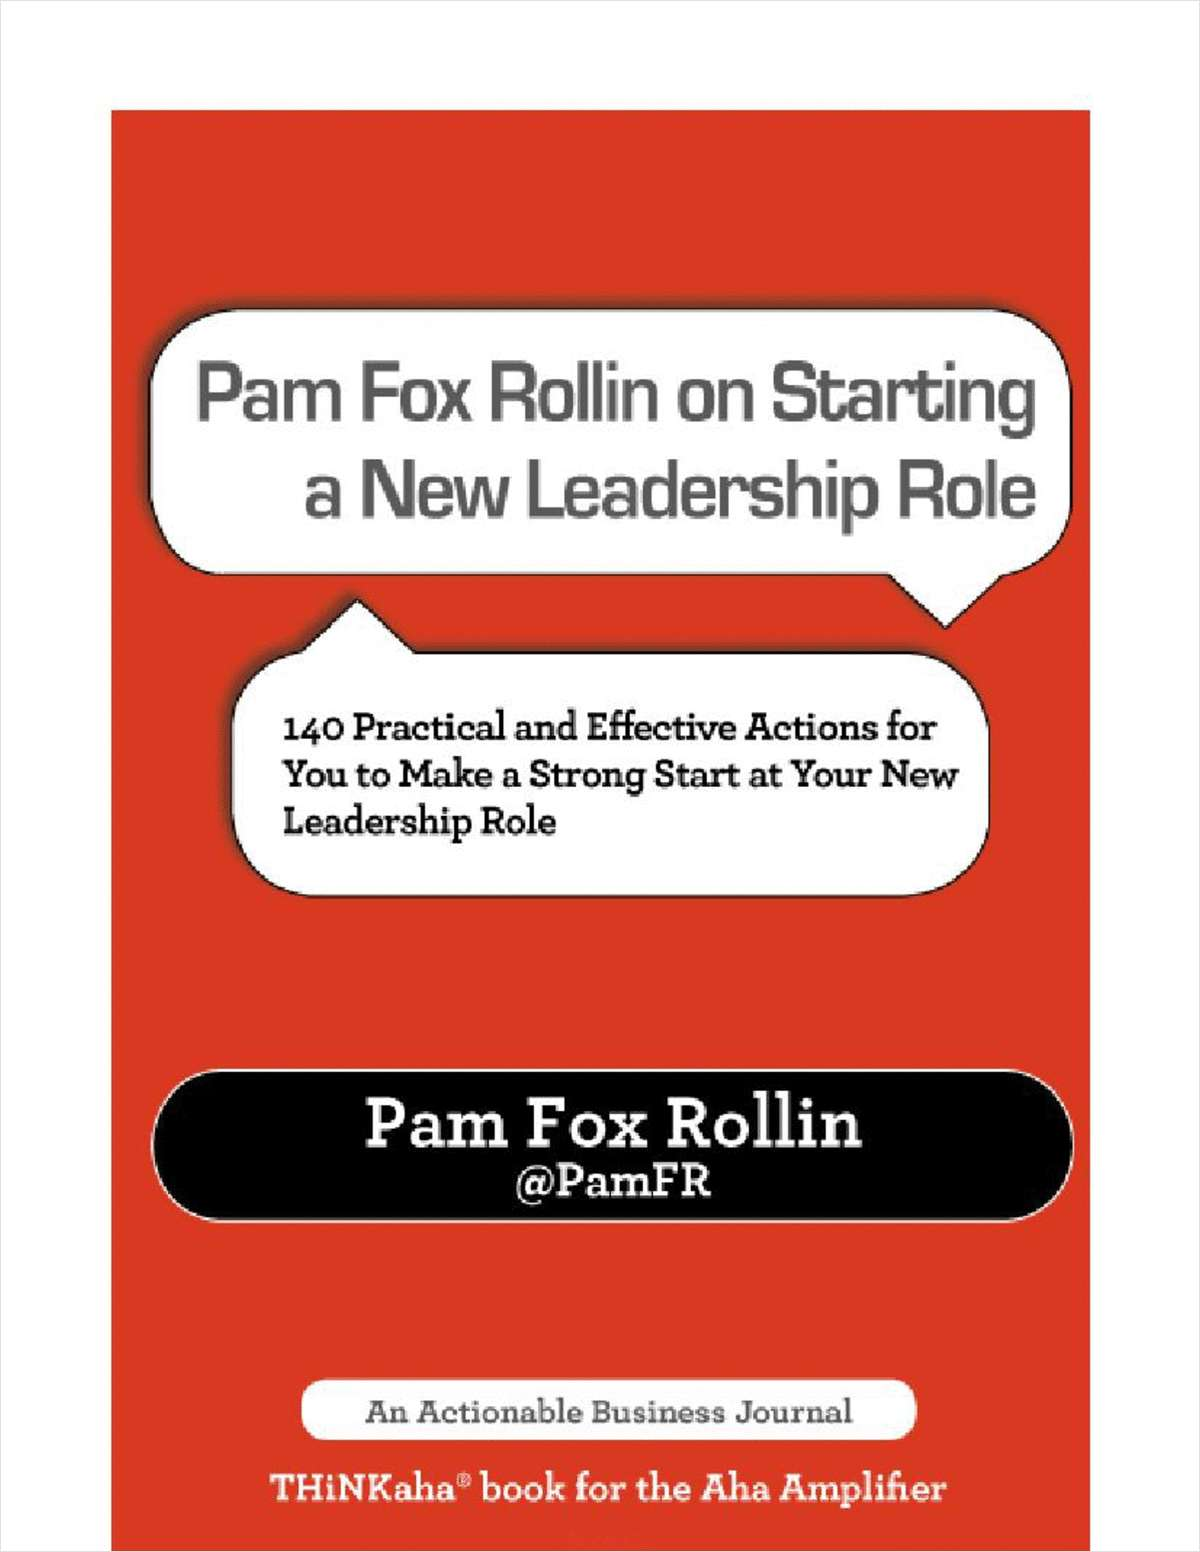 Pam Fox Rollin on Starting a New Leadership Role